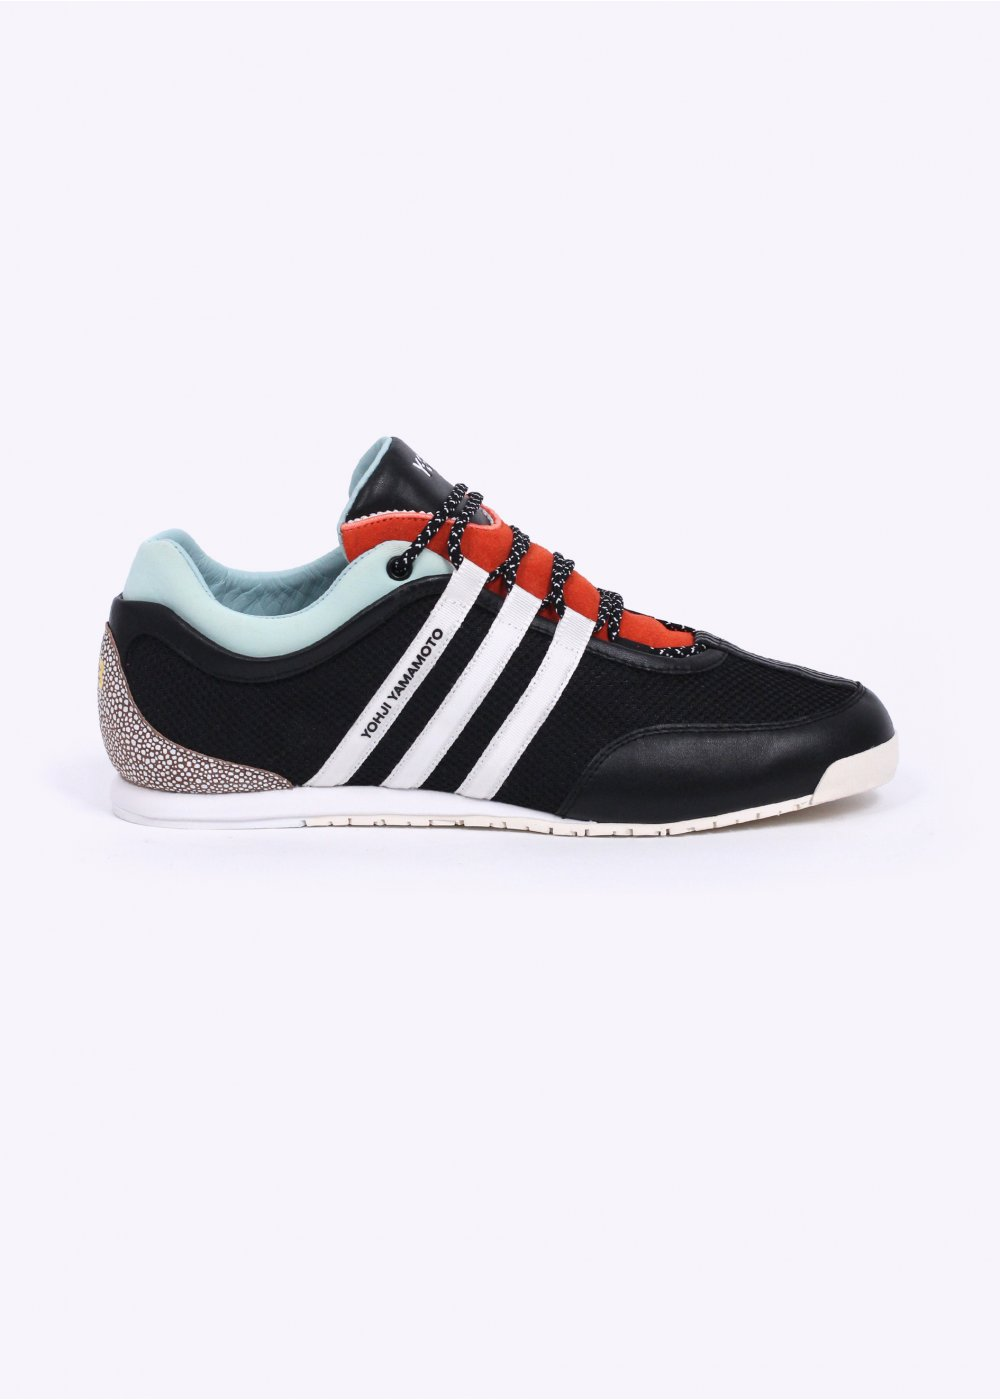 cbdb68dc5 adidas Y-3 Boxing Trainers - Black   Orange